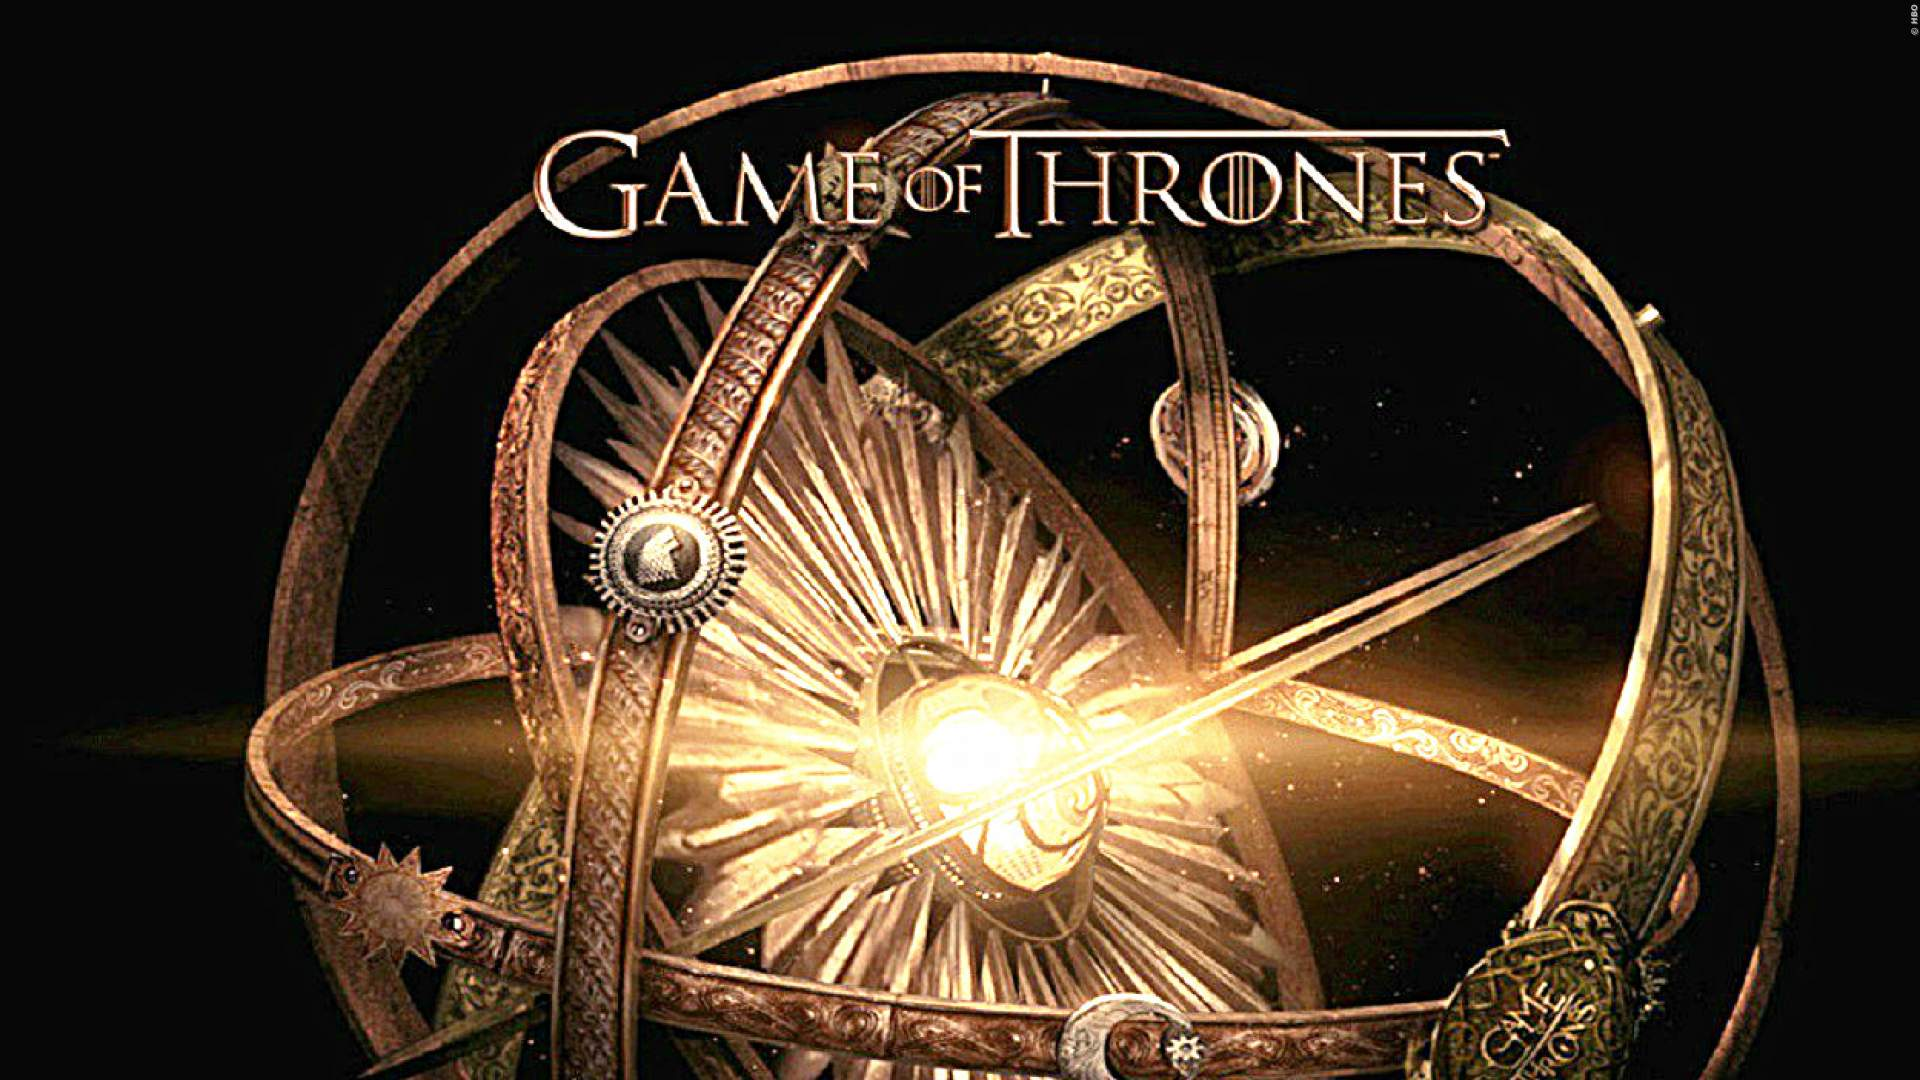 GAME OF THRONES: Diese Songs verraten laut Machern das Ende